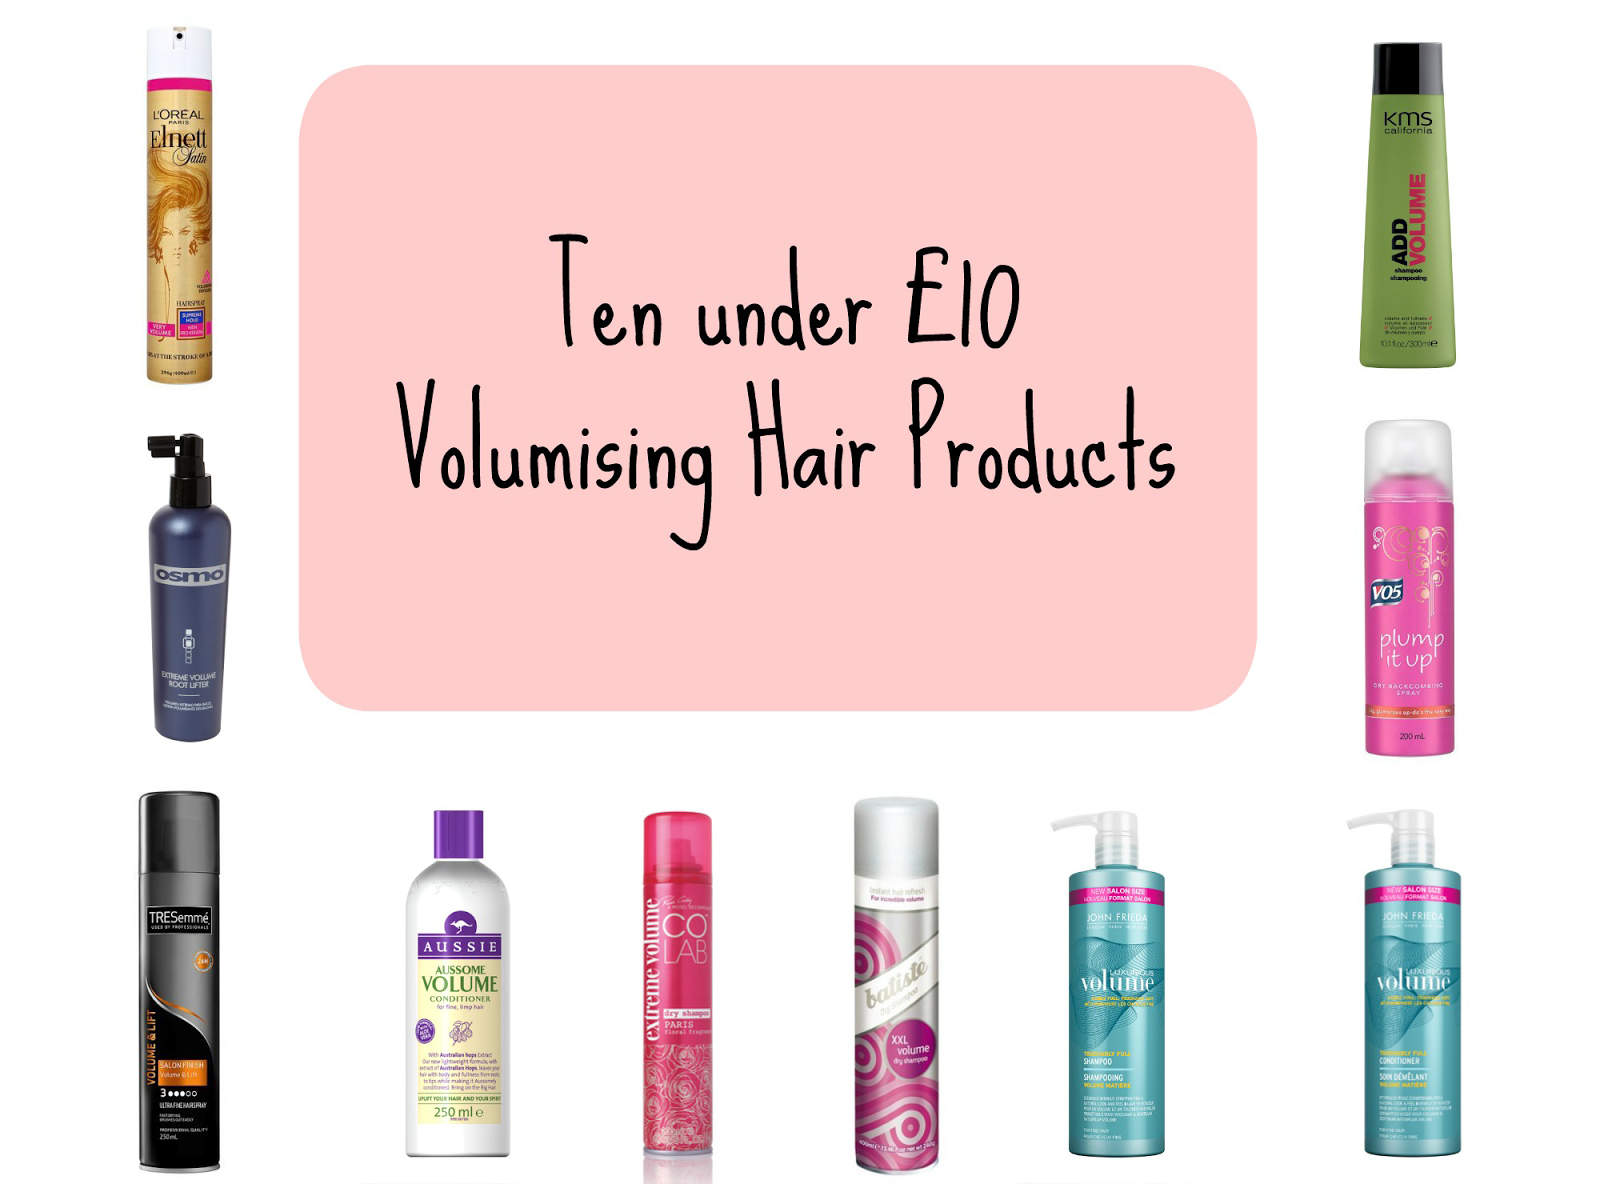 Budget volumising hair products | Hair products under £10